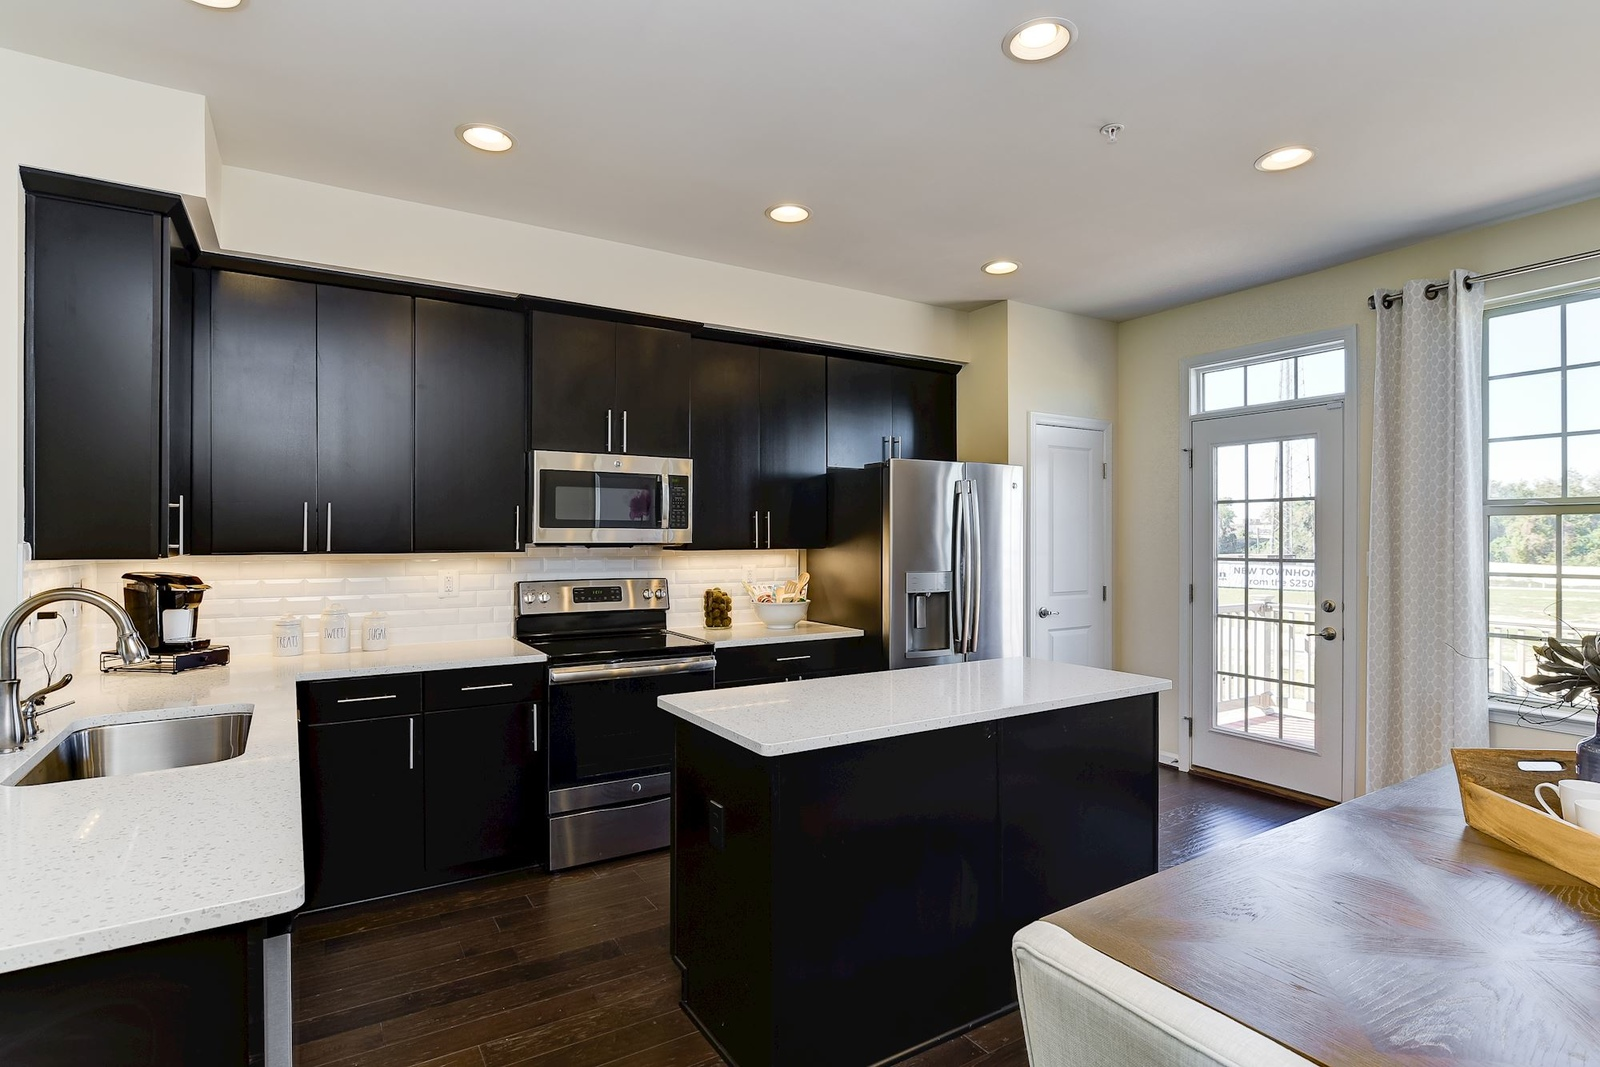 New Home Options Of New Hepburn Townhome Model For Sale At Greenbelt Station